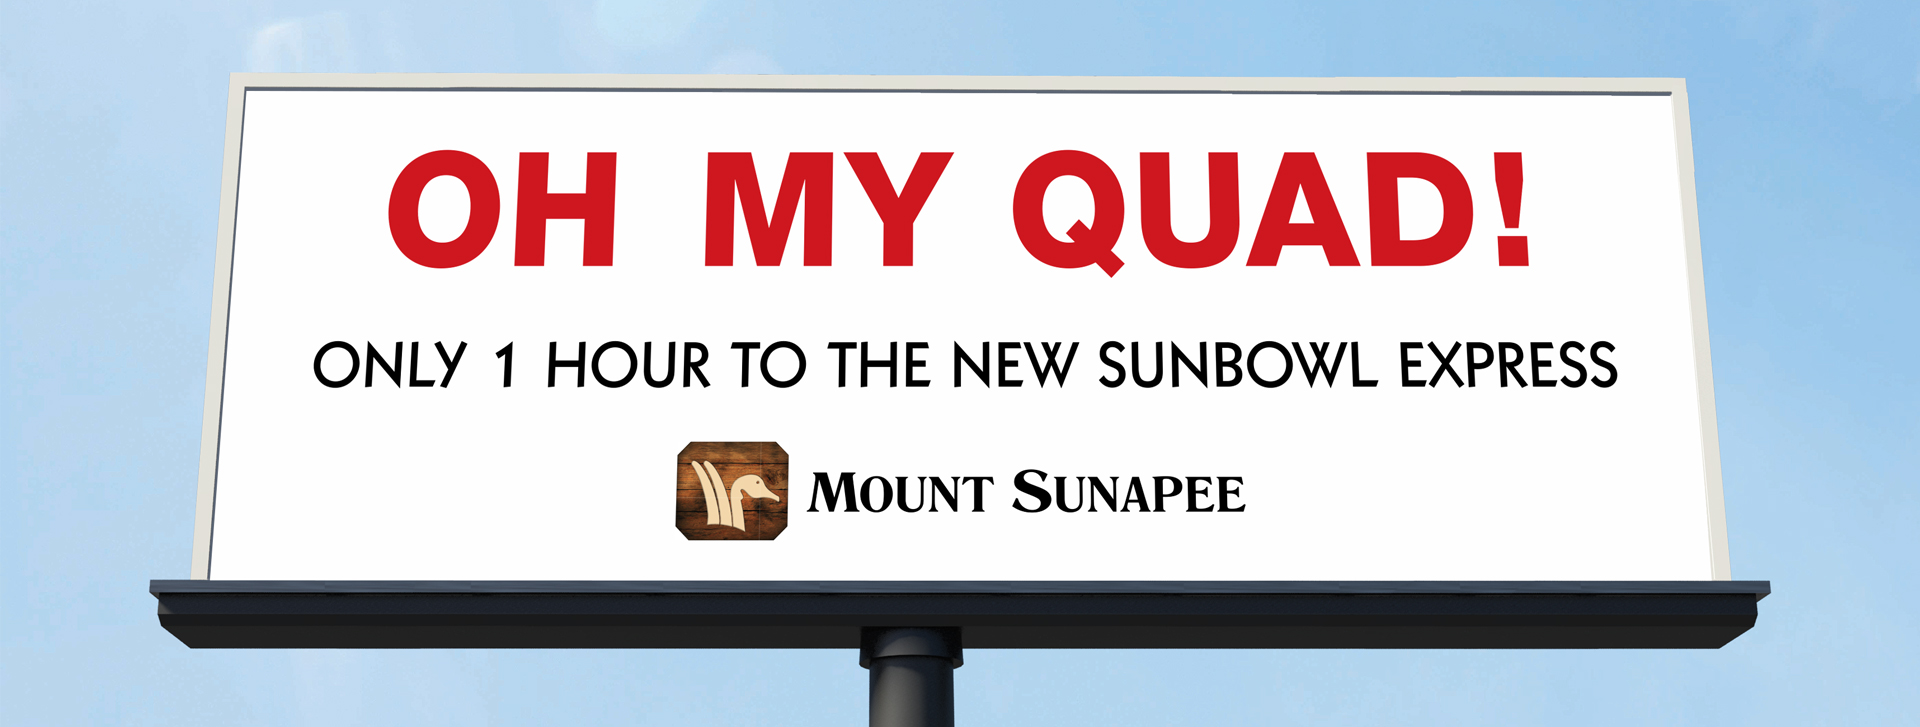 Oh My Quad! billboard, only 1 hour to the new sunbowl express, Mount Sunapee